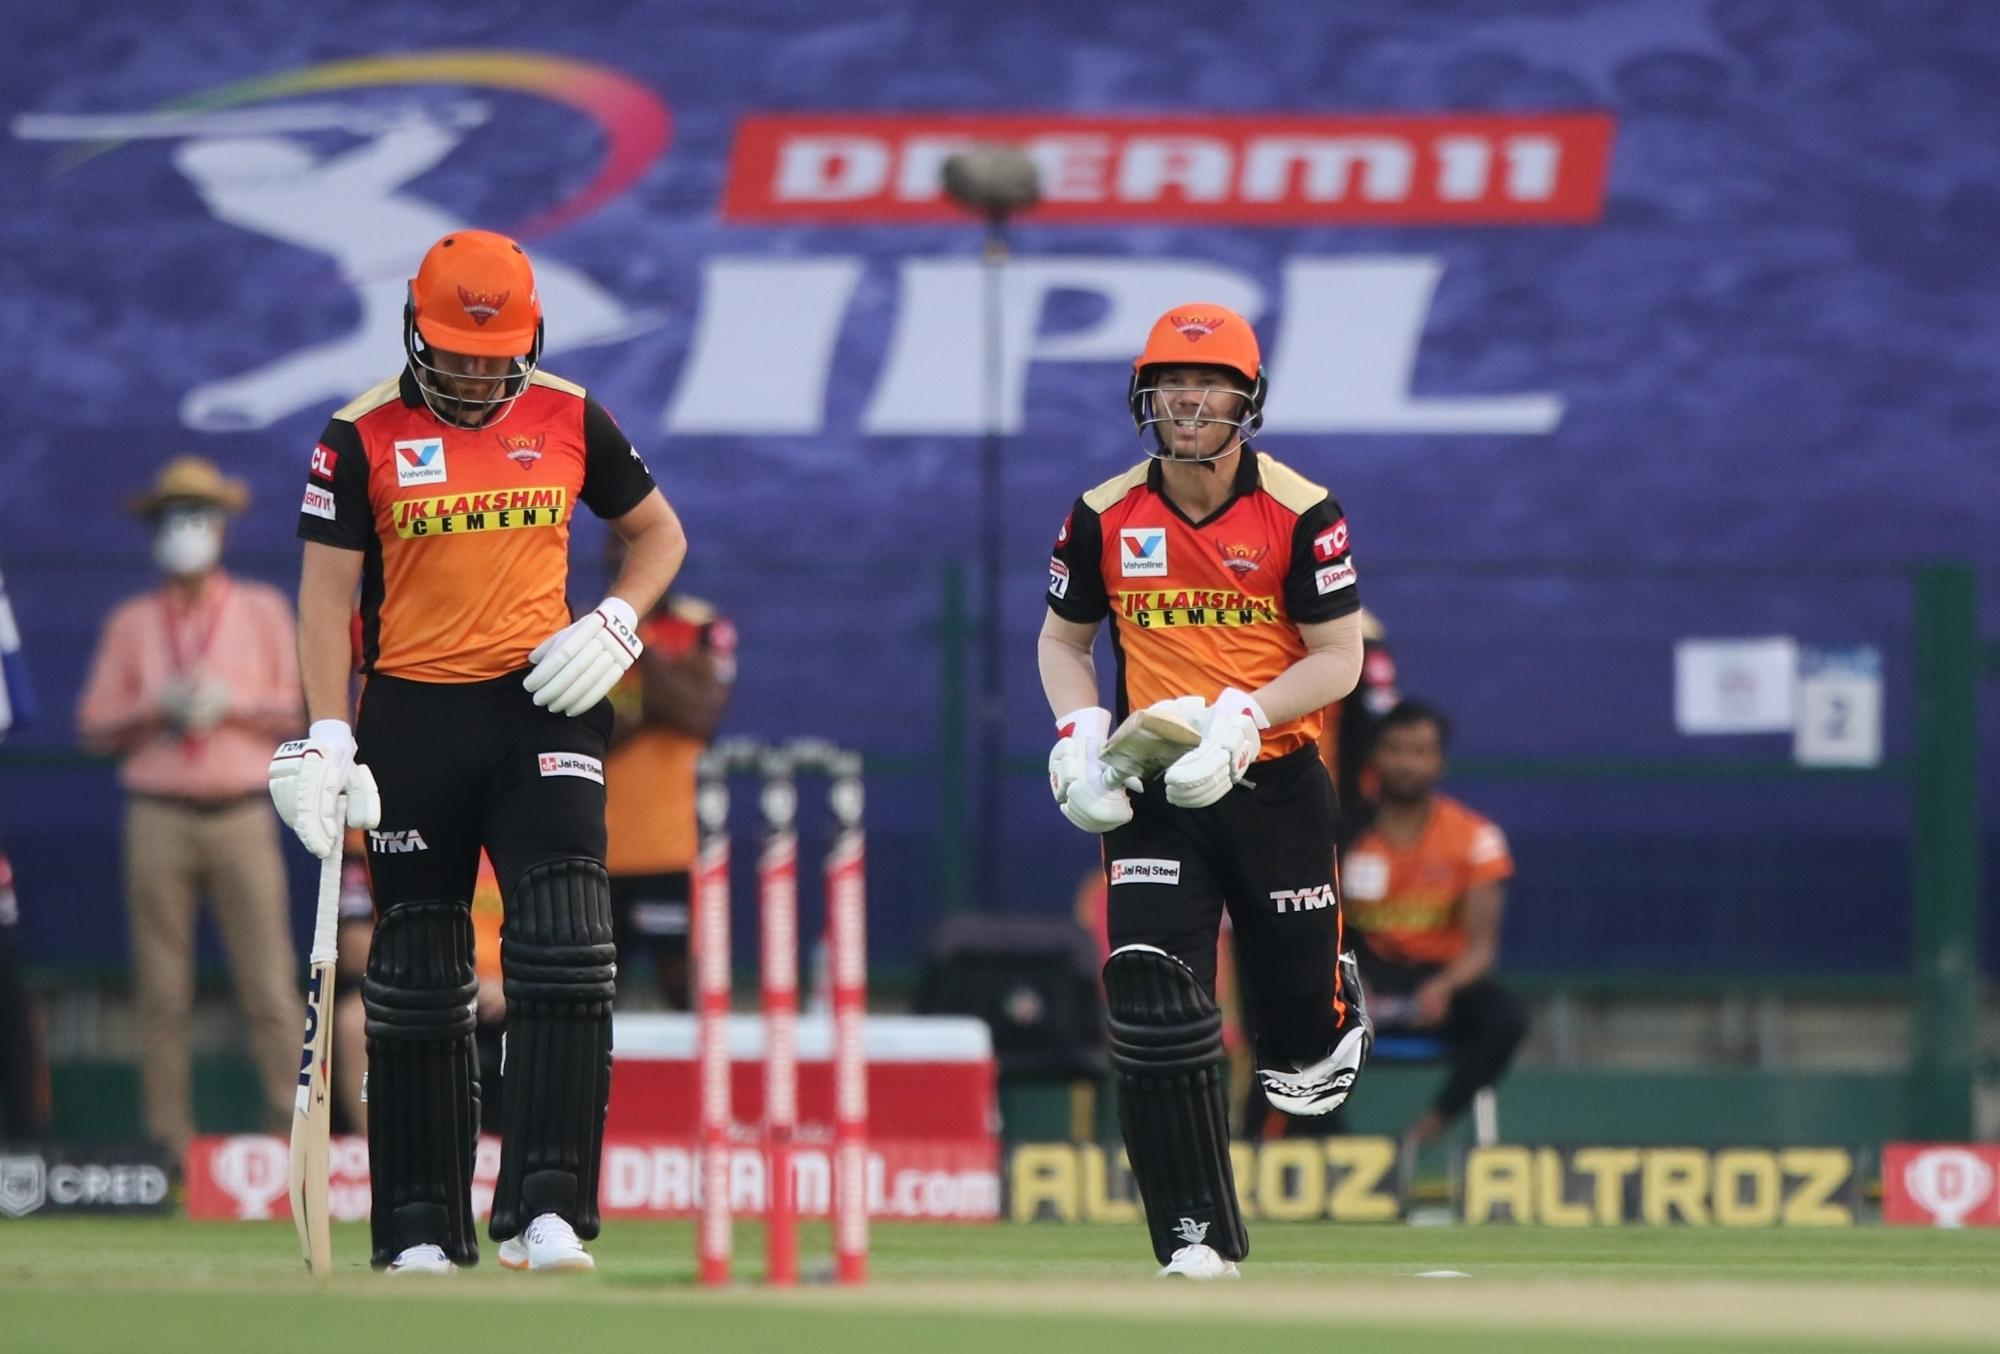 David Warner and Jonny Bairstow need to give SRH a flying start   IANS